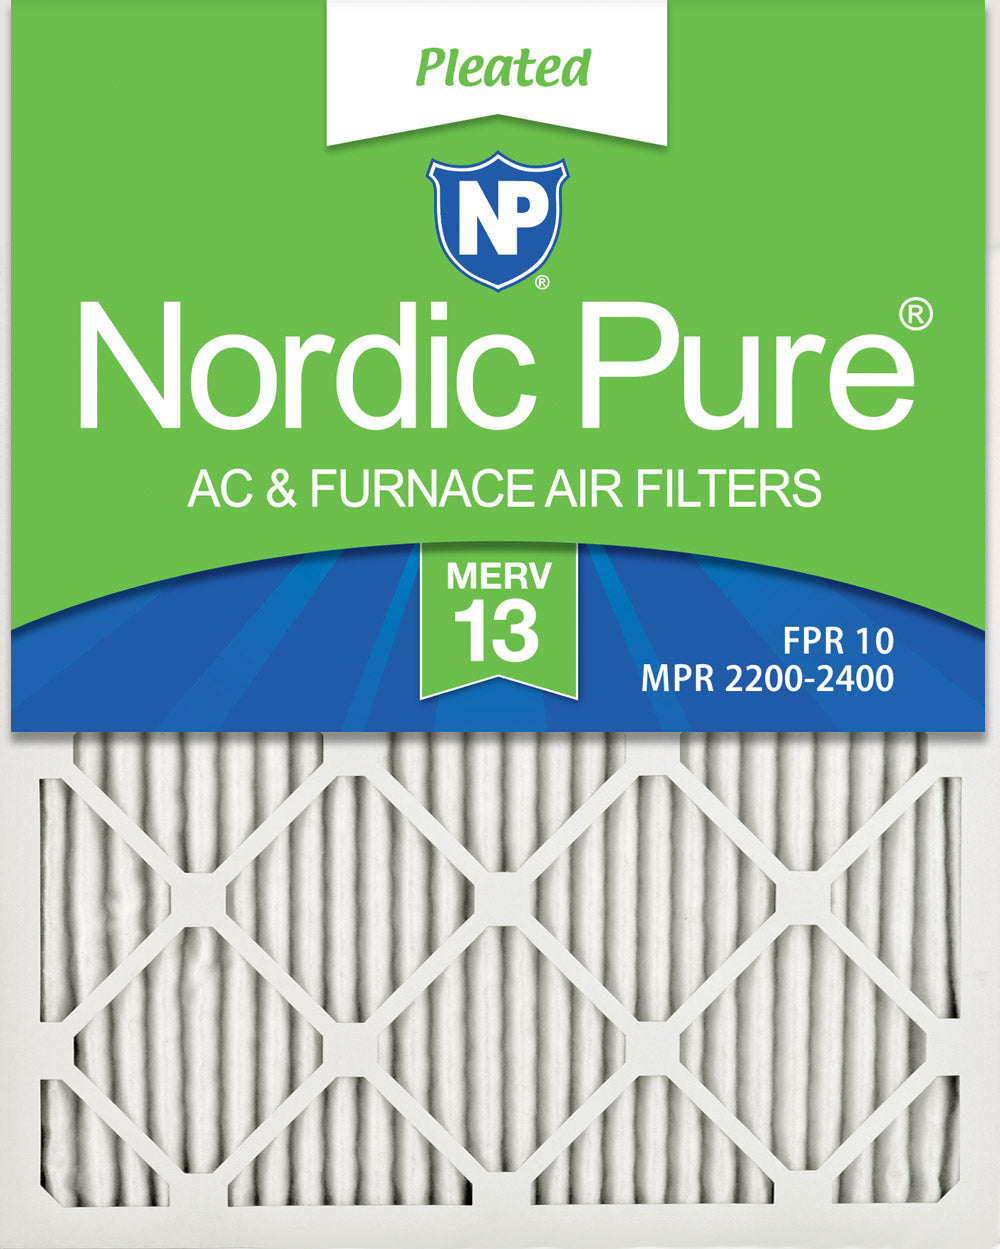 14x20x1 Pleated MERV 13 Air Filters 3 Pack